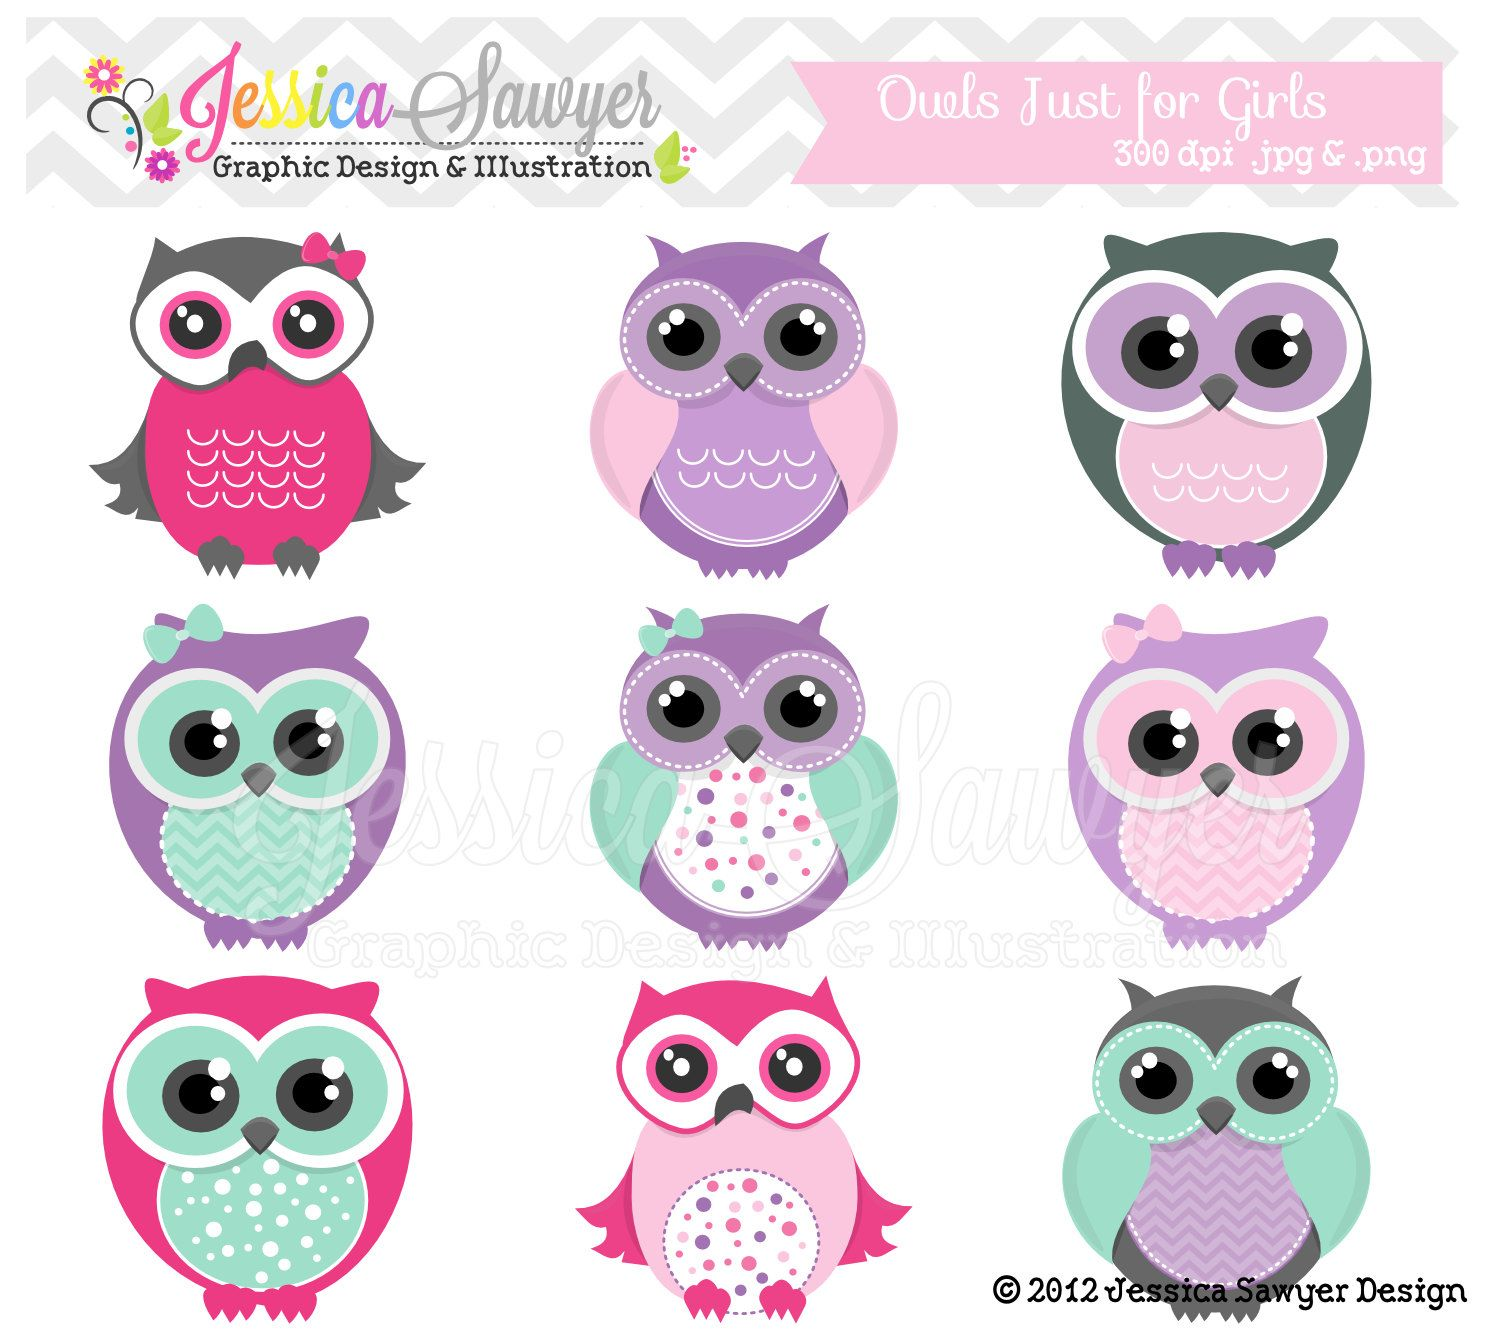 80 Off Instant Download Cute Owl Clipart Girly Pink Clip Art Bird Graphic Baby Shower Owl Logo Commercial Cute Baby Owl Owl Clip Art Owl Baby Shower